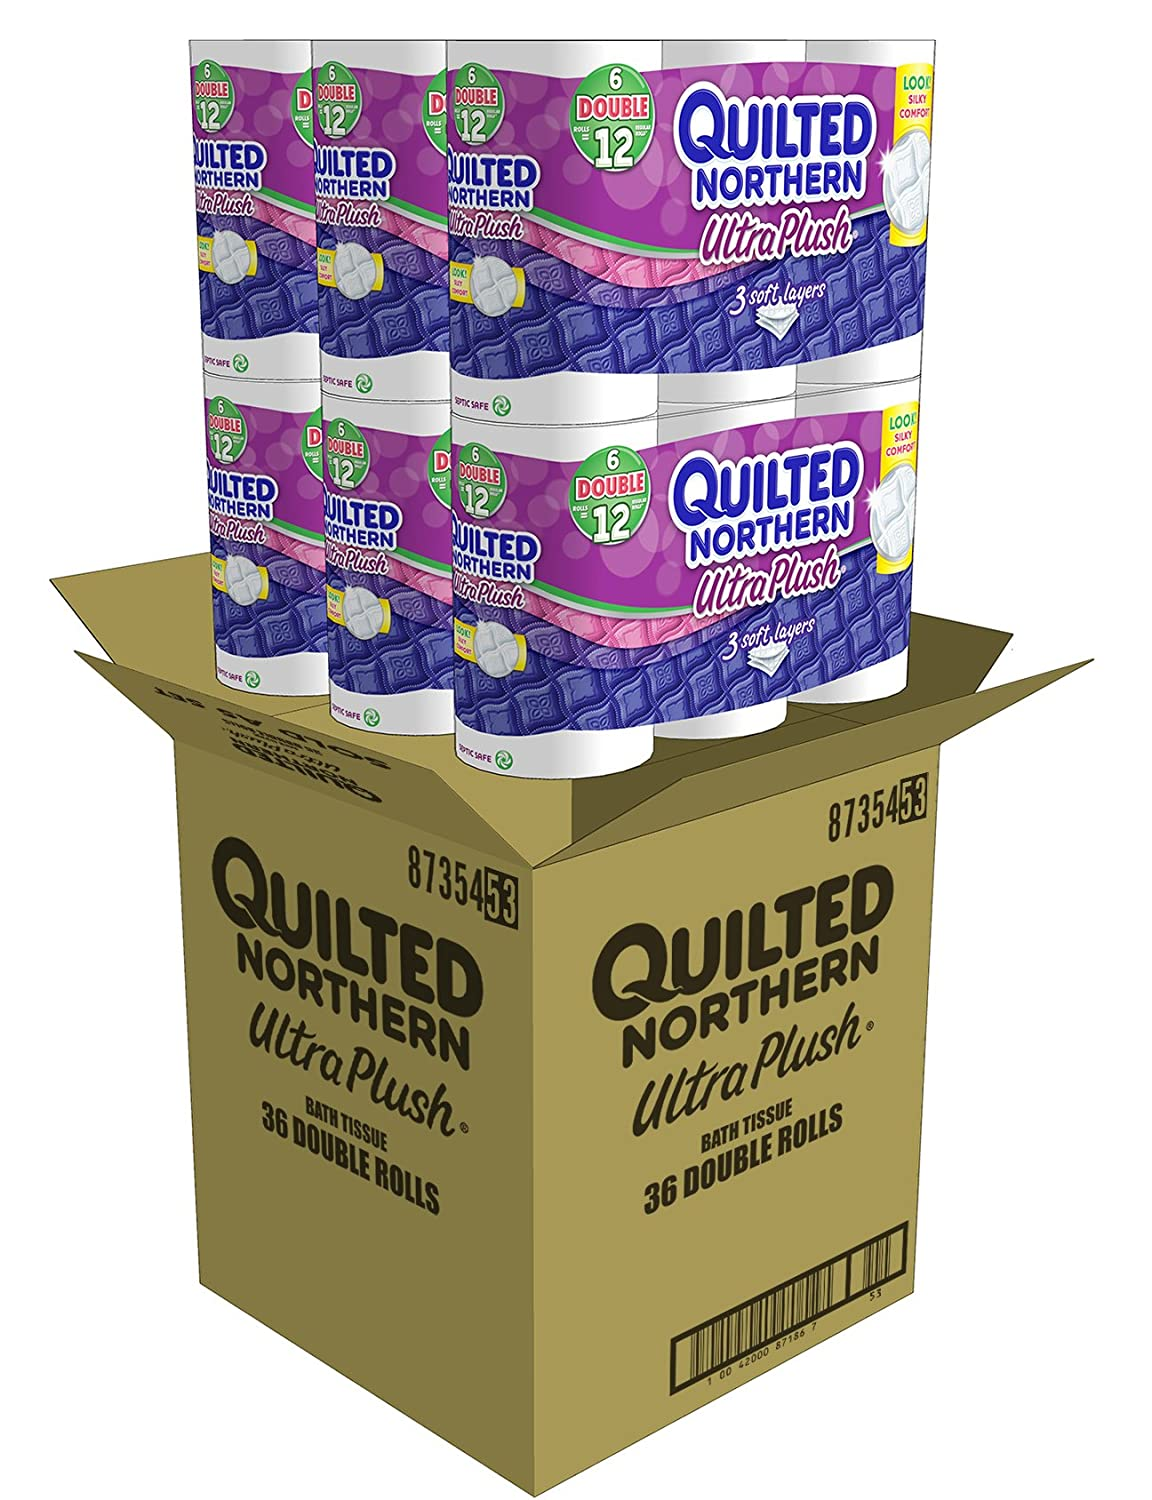 Amazon.com: Quilted Northern Ultra Plush Bath Tissue, 36 Double ... : coupons for quilted northern toilet paper - Adamdwight.com